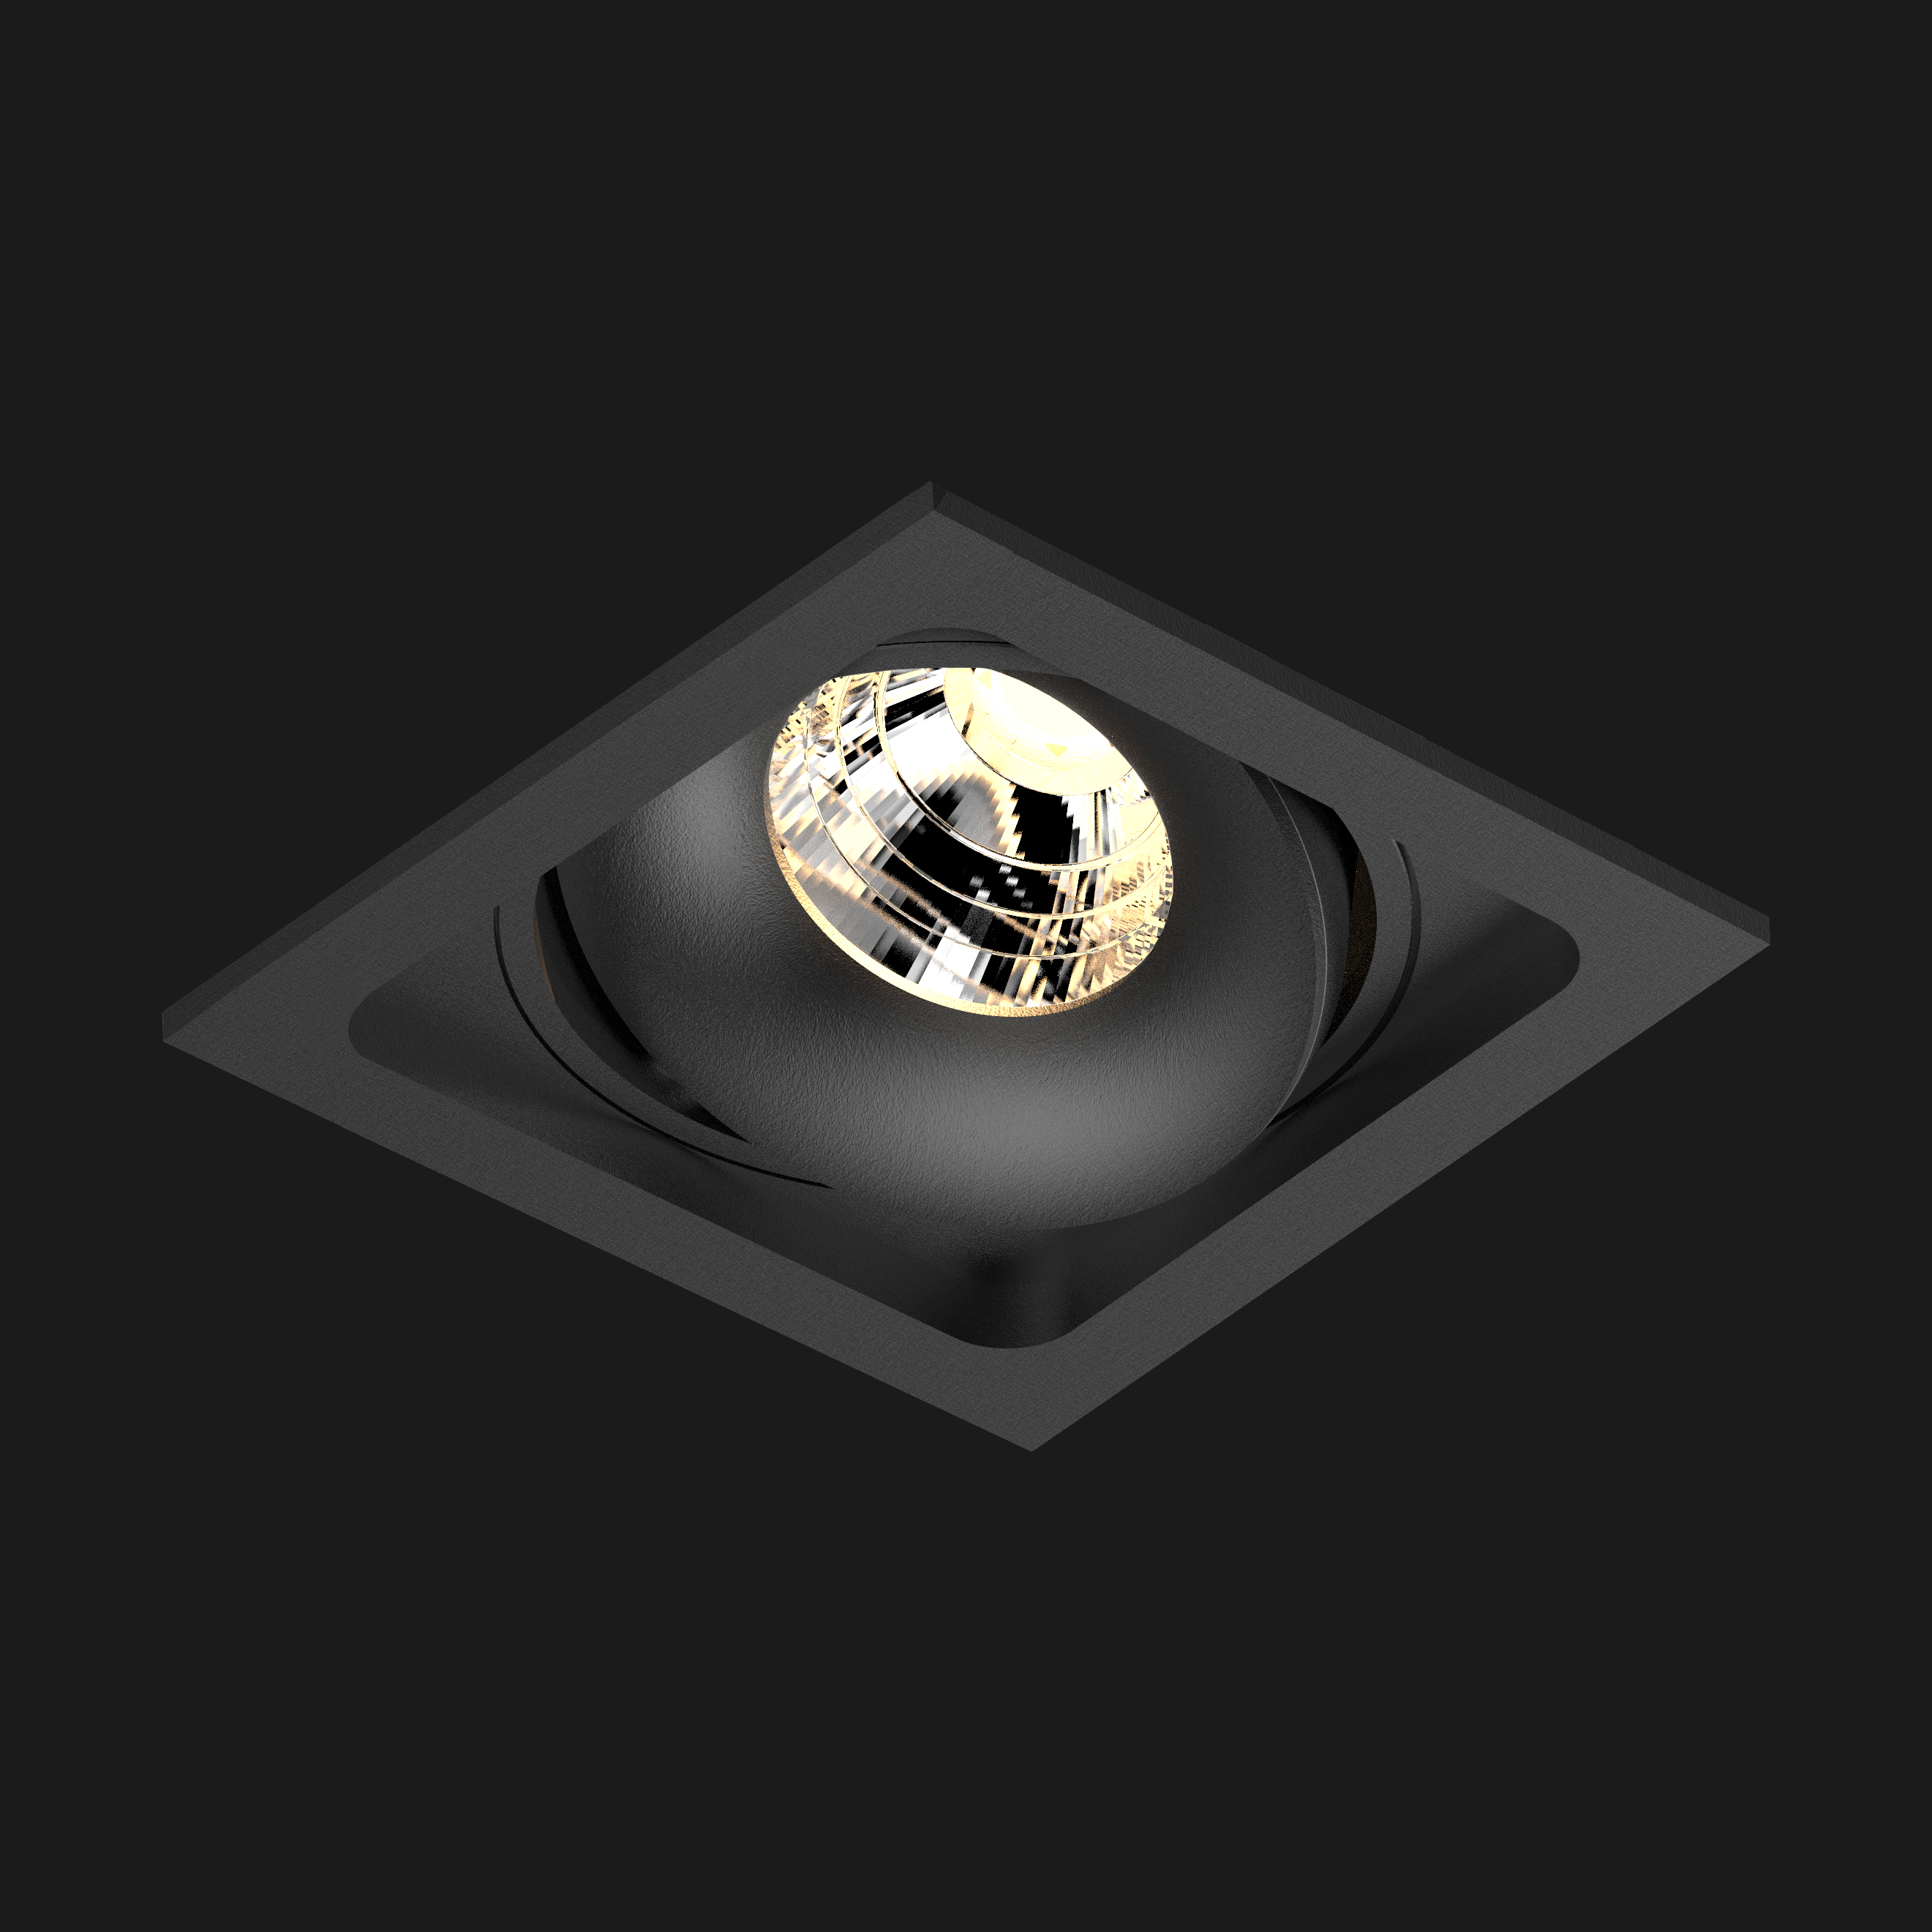 A black led downlight with black background